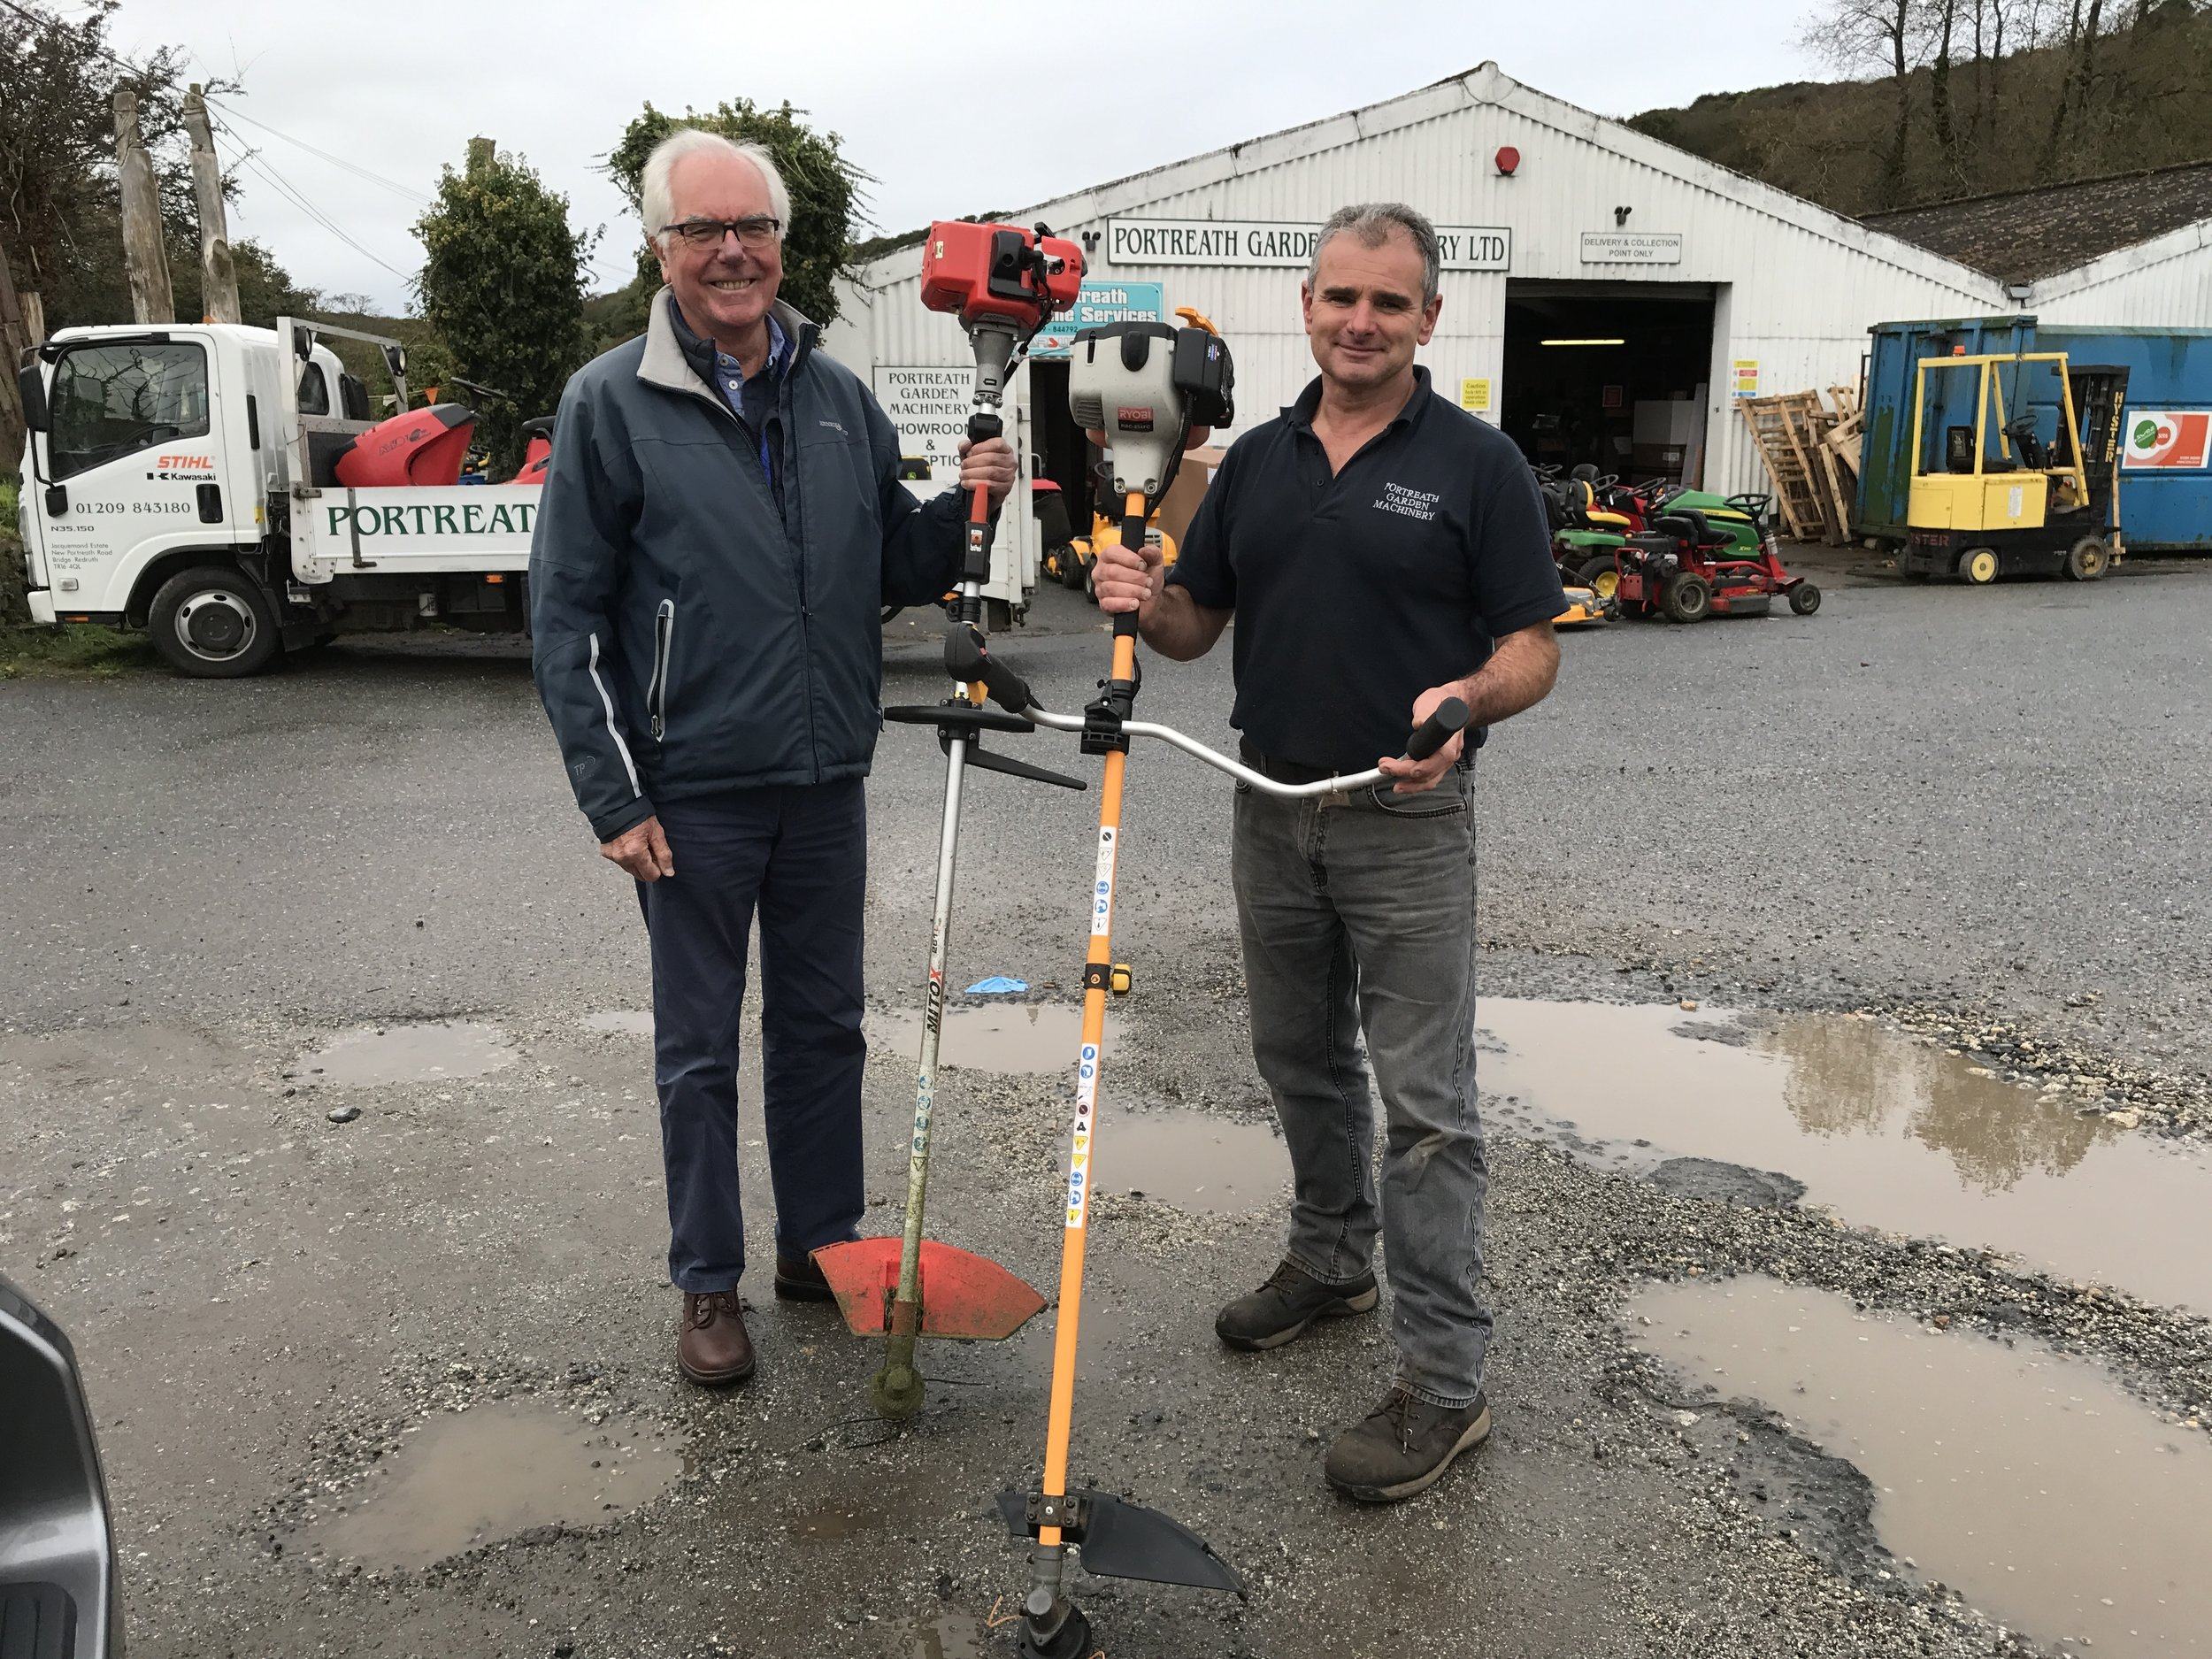 2017-10-09 Donation of 2 strimmers from Steve Stobel of Portreath Garden Machinery.JPG